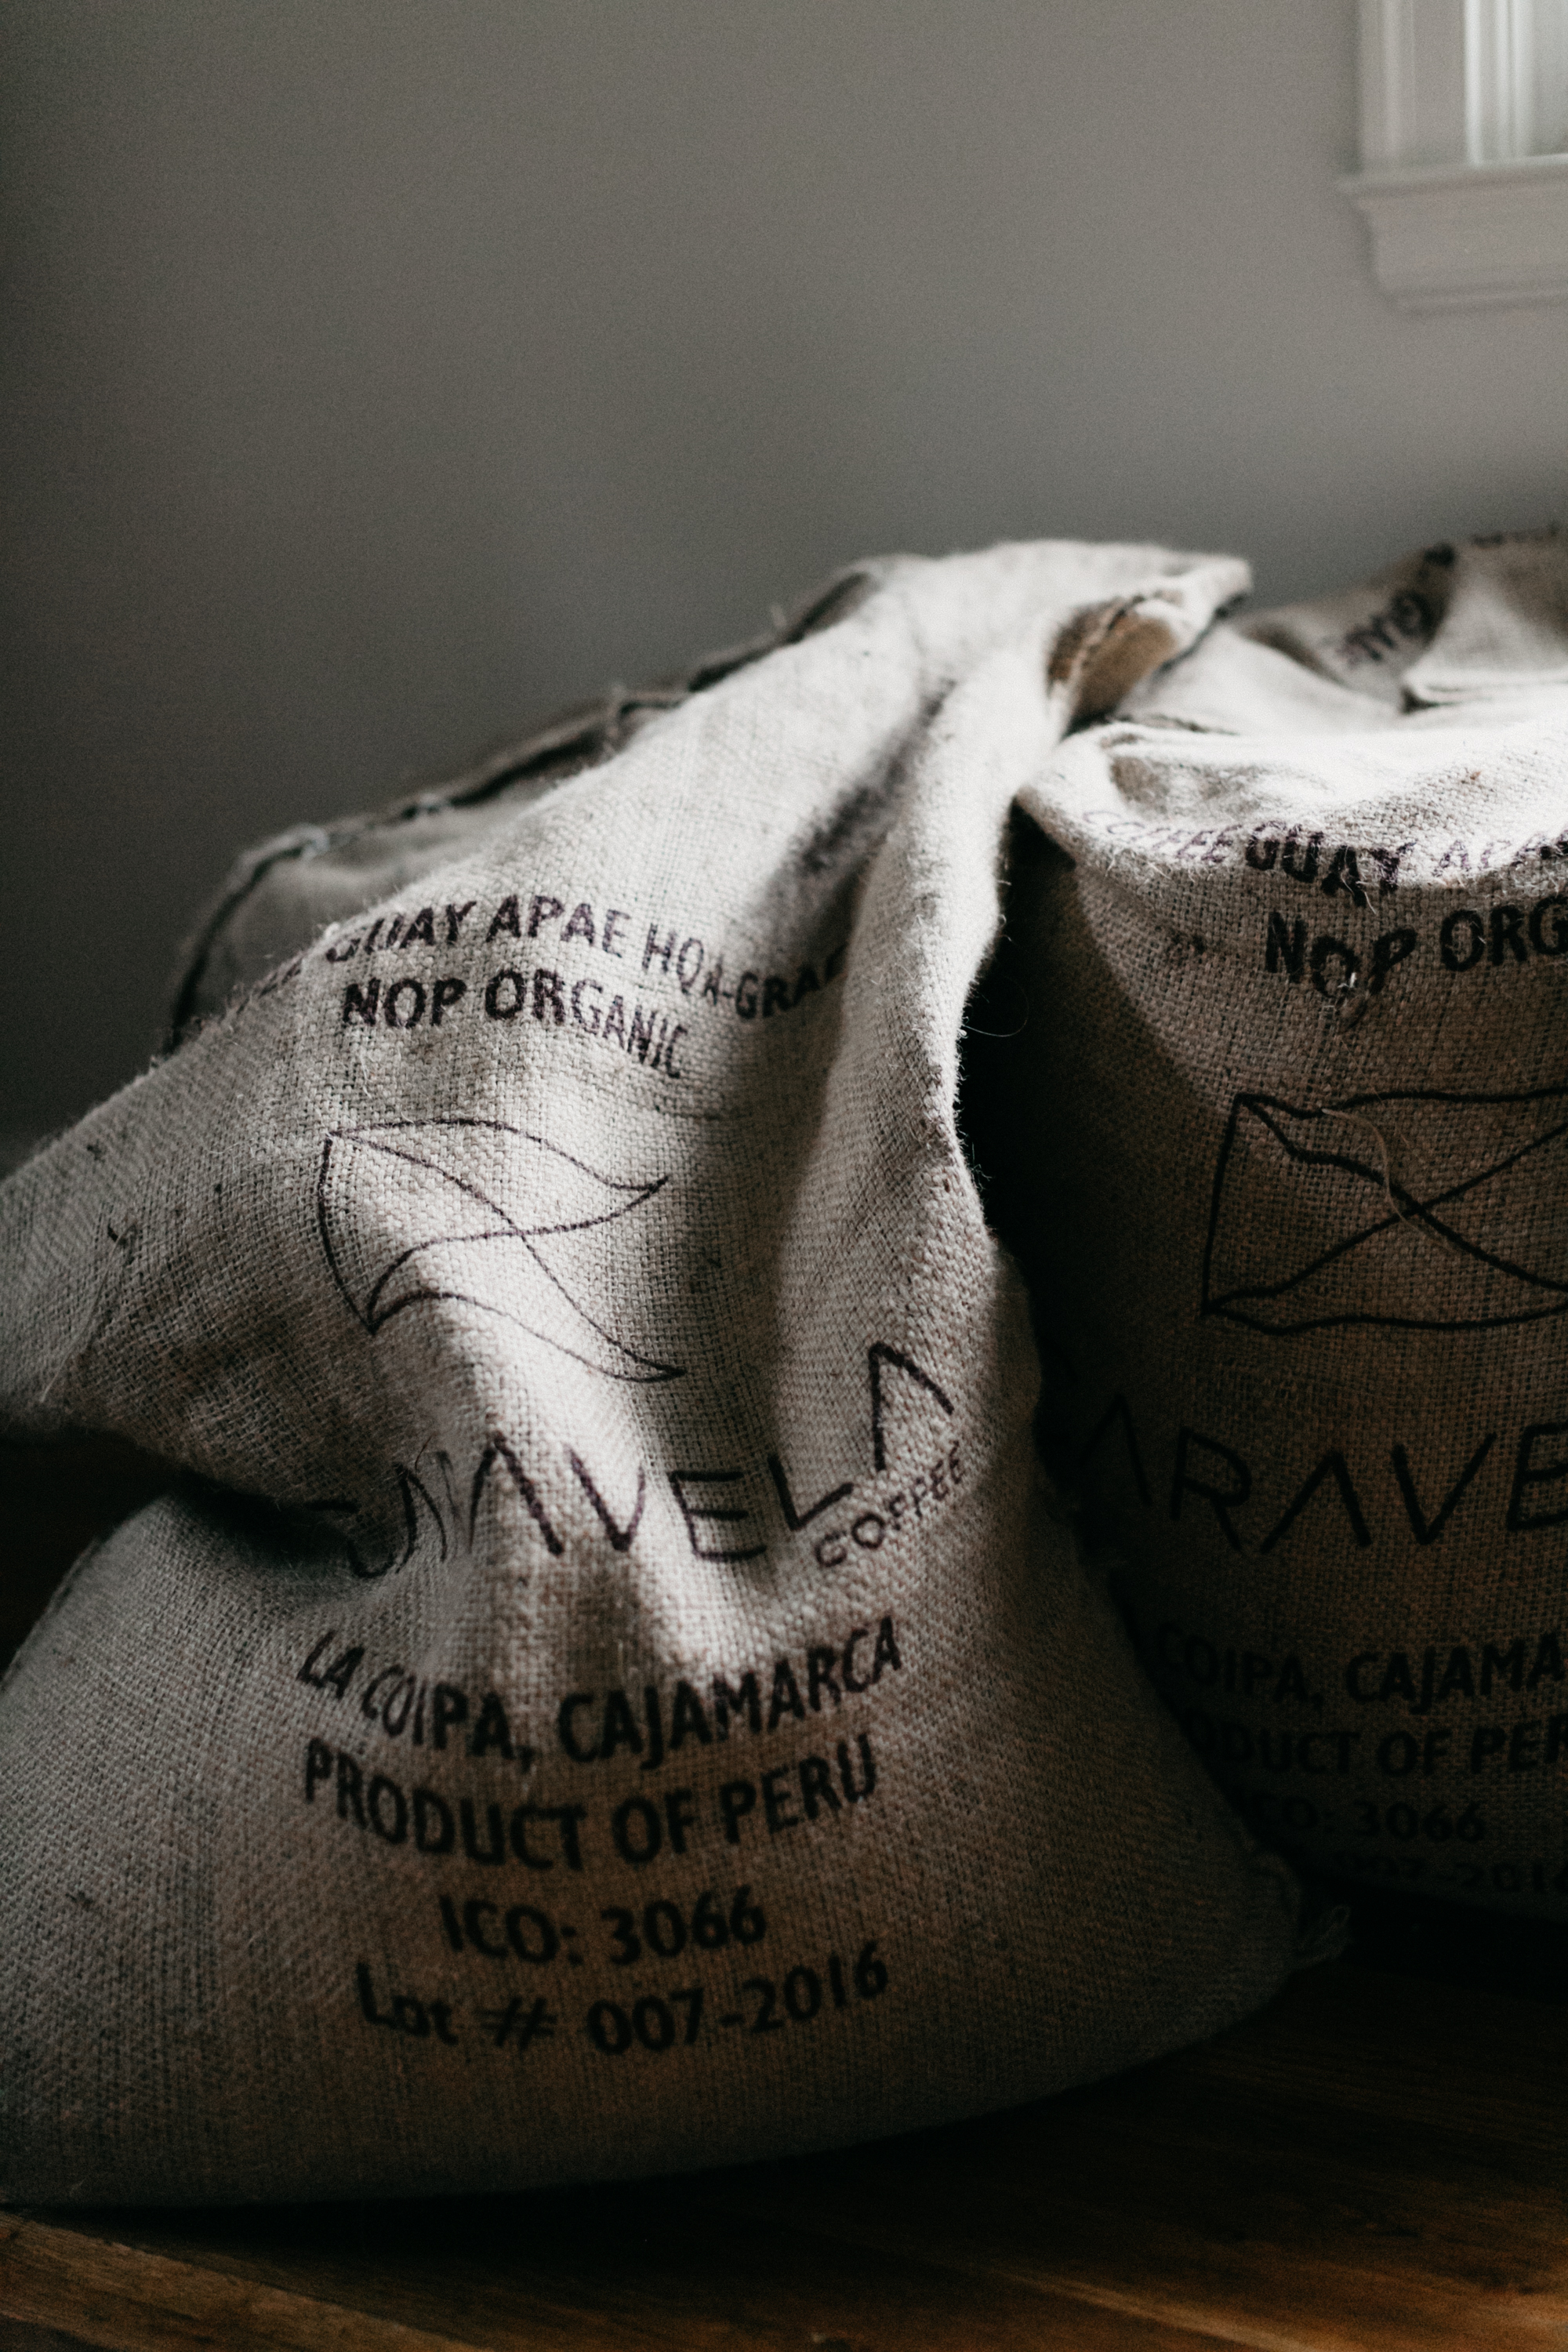 Las Águilas - Origin: Quillabamba Cusco, PeruNotes: nutty, citrus, dark chocolate, caramelVarieties: Typica, Caturra, BourbonProcess: Fully sun-dried, fully washed,Altitude: 1,700-2150 MASLIs a group of 20 farmers in a cooperative in the mountain regions of Cusco. These indigenous farmers have survived for over 38 years despite weather related devastation. The name of the farm refers to the eagles that fly over the chain of mountains.Brewing Methods: Great espresso and for filtered coffee methods. This coffee pairs well with milk and is a fully body coffee that is a crowd favorite.